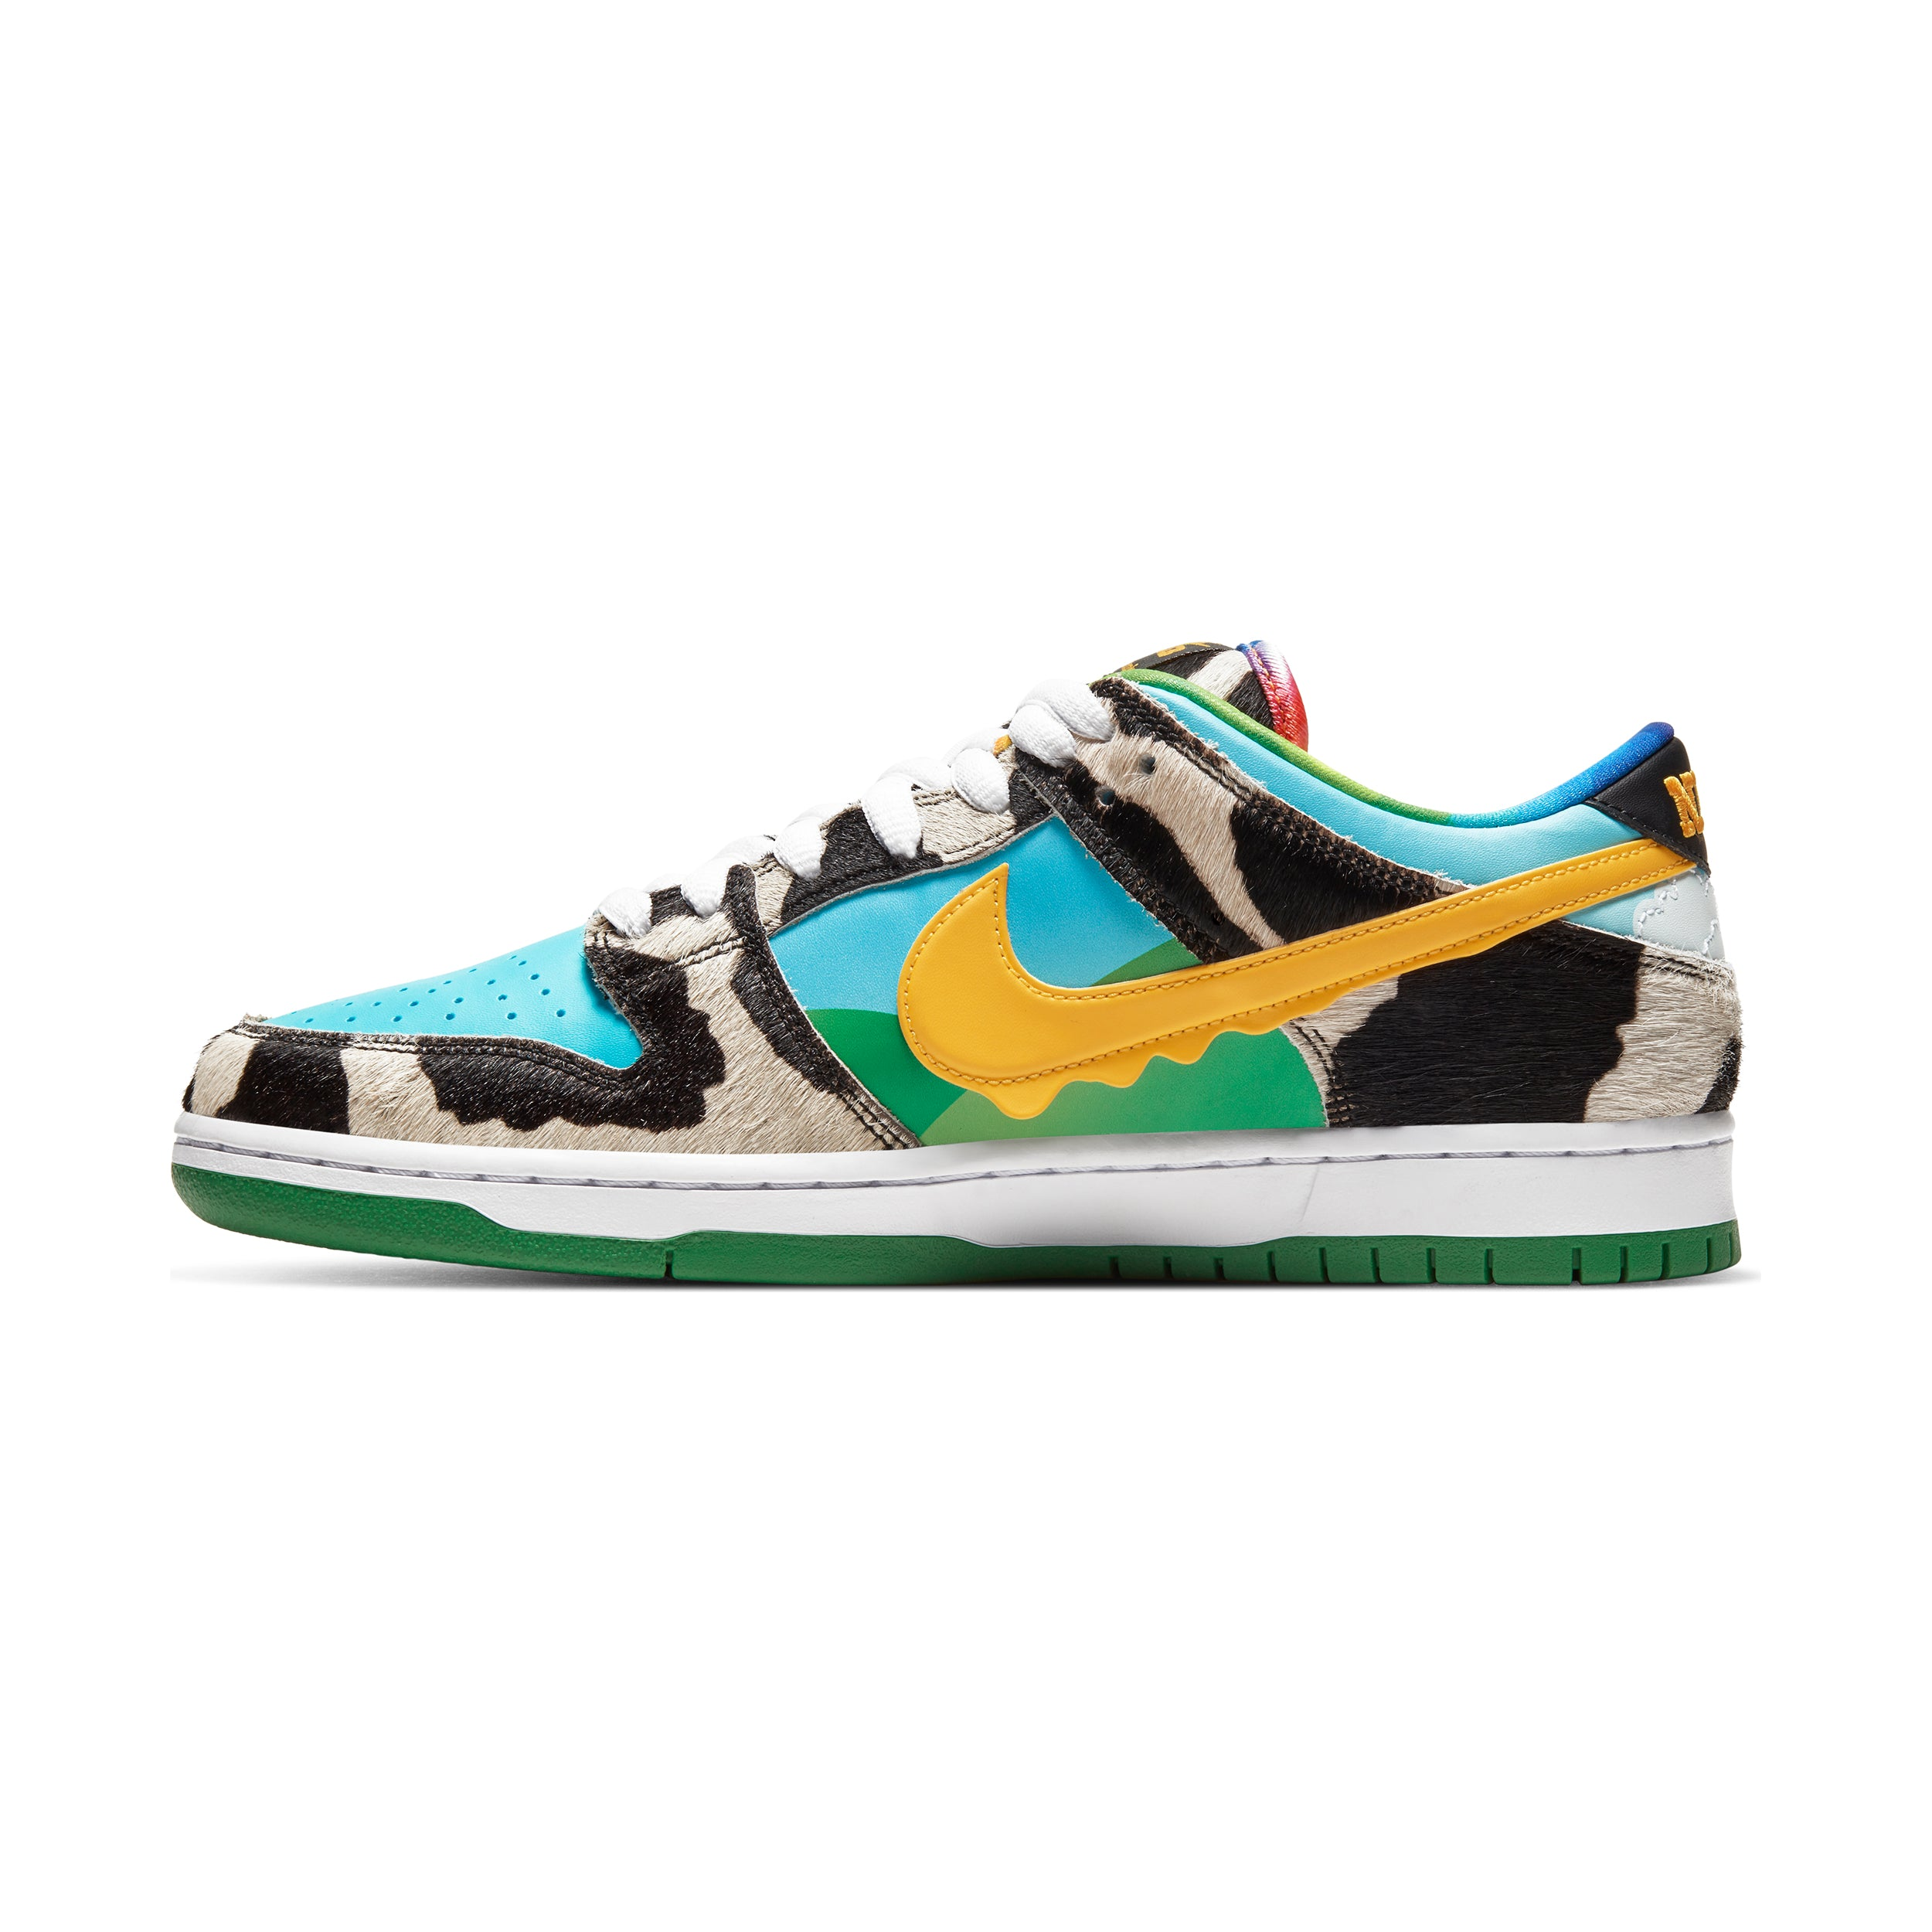 Concepts Nike SB Dunk Low 'Chunky Dunky'